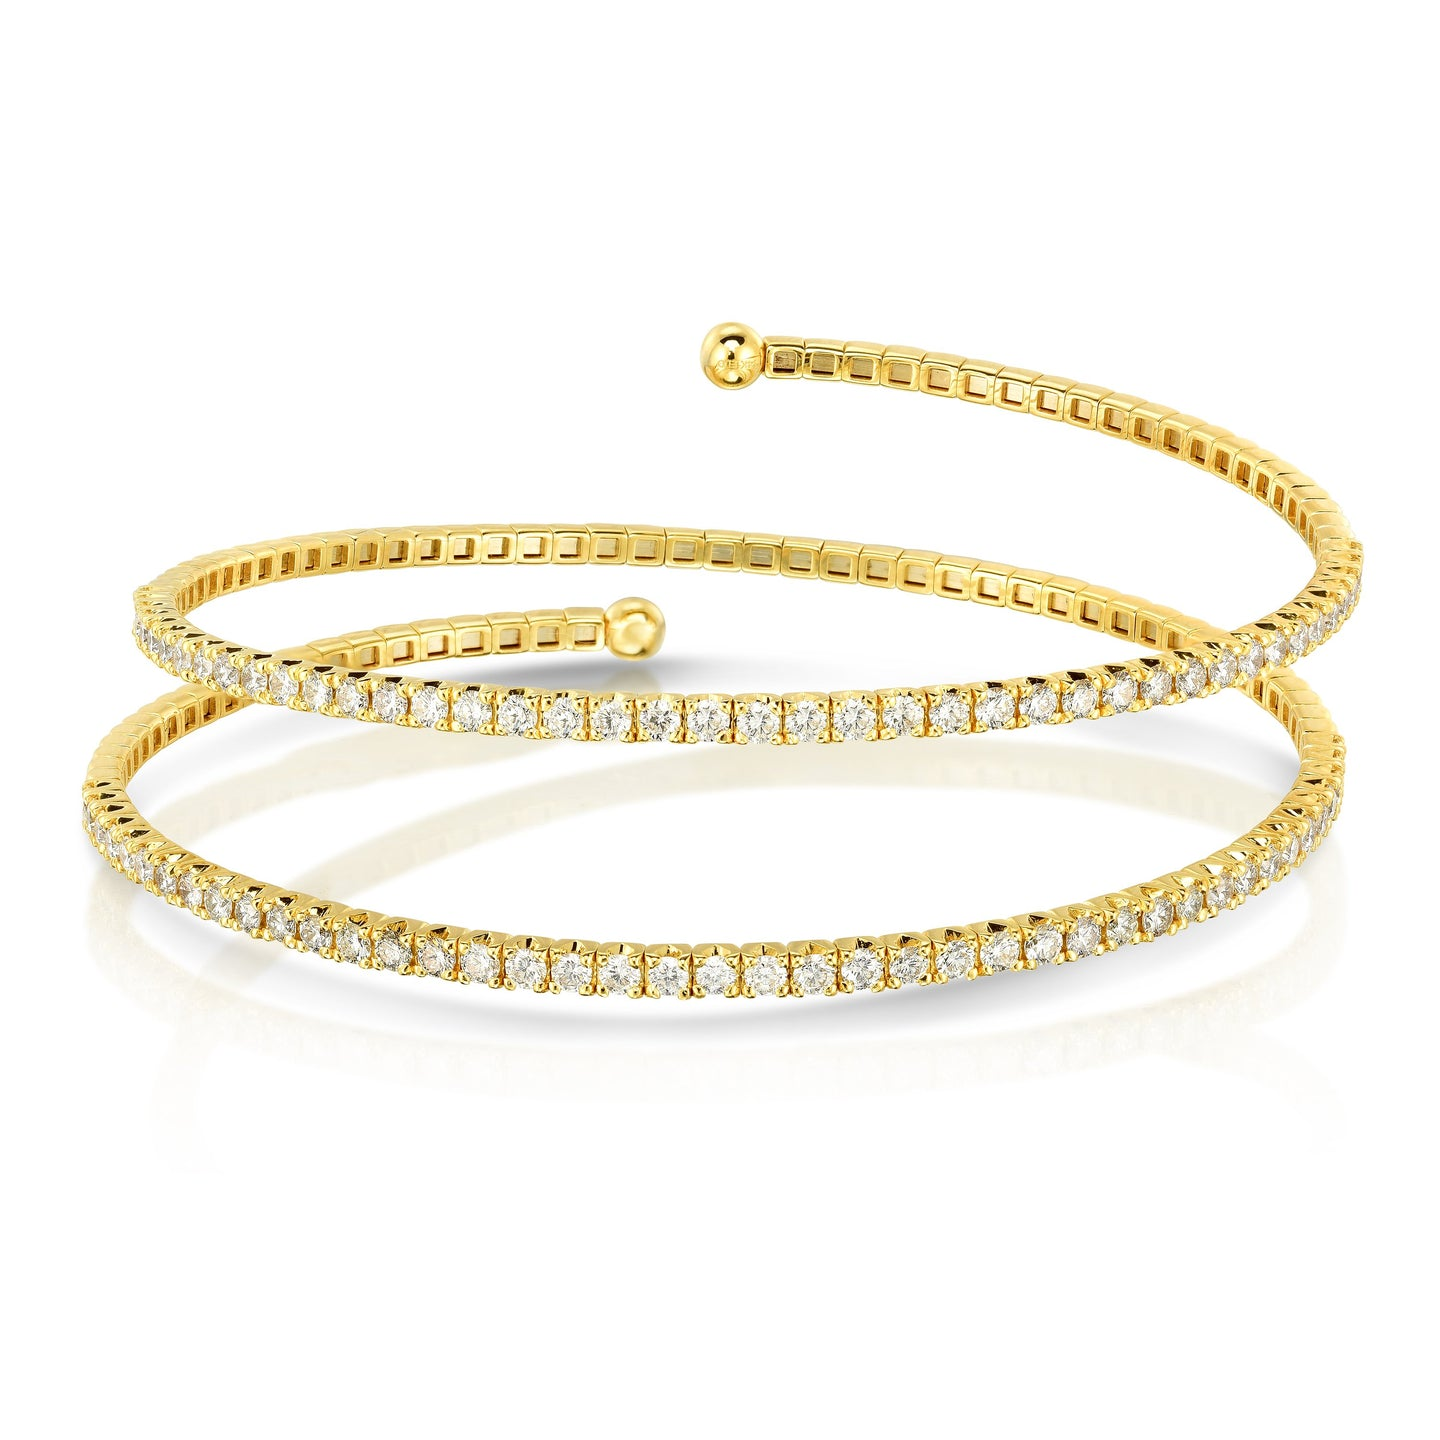 Sabel Collection 14K Yellow Gold Two Row Coil Bracelet